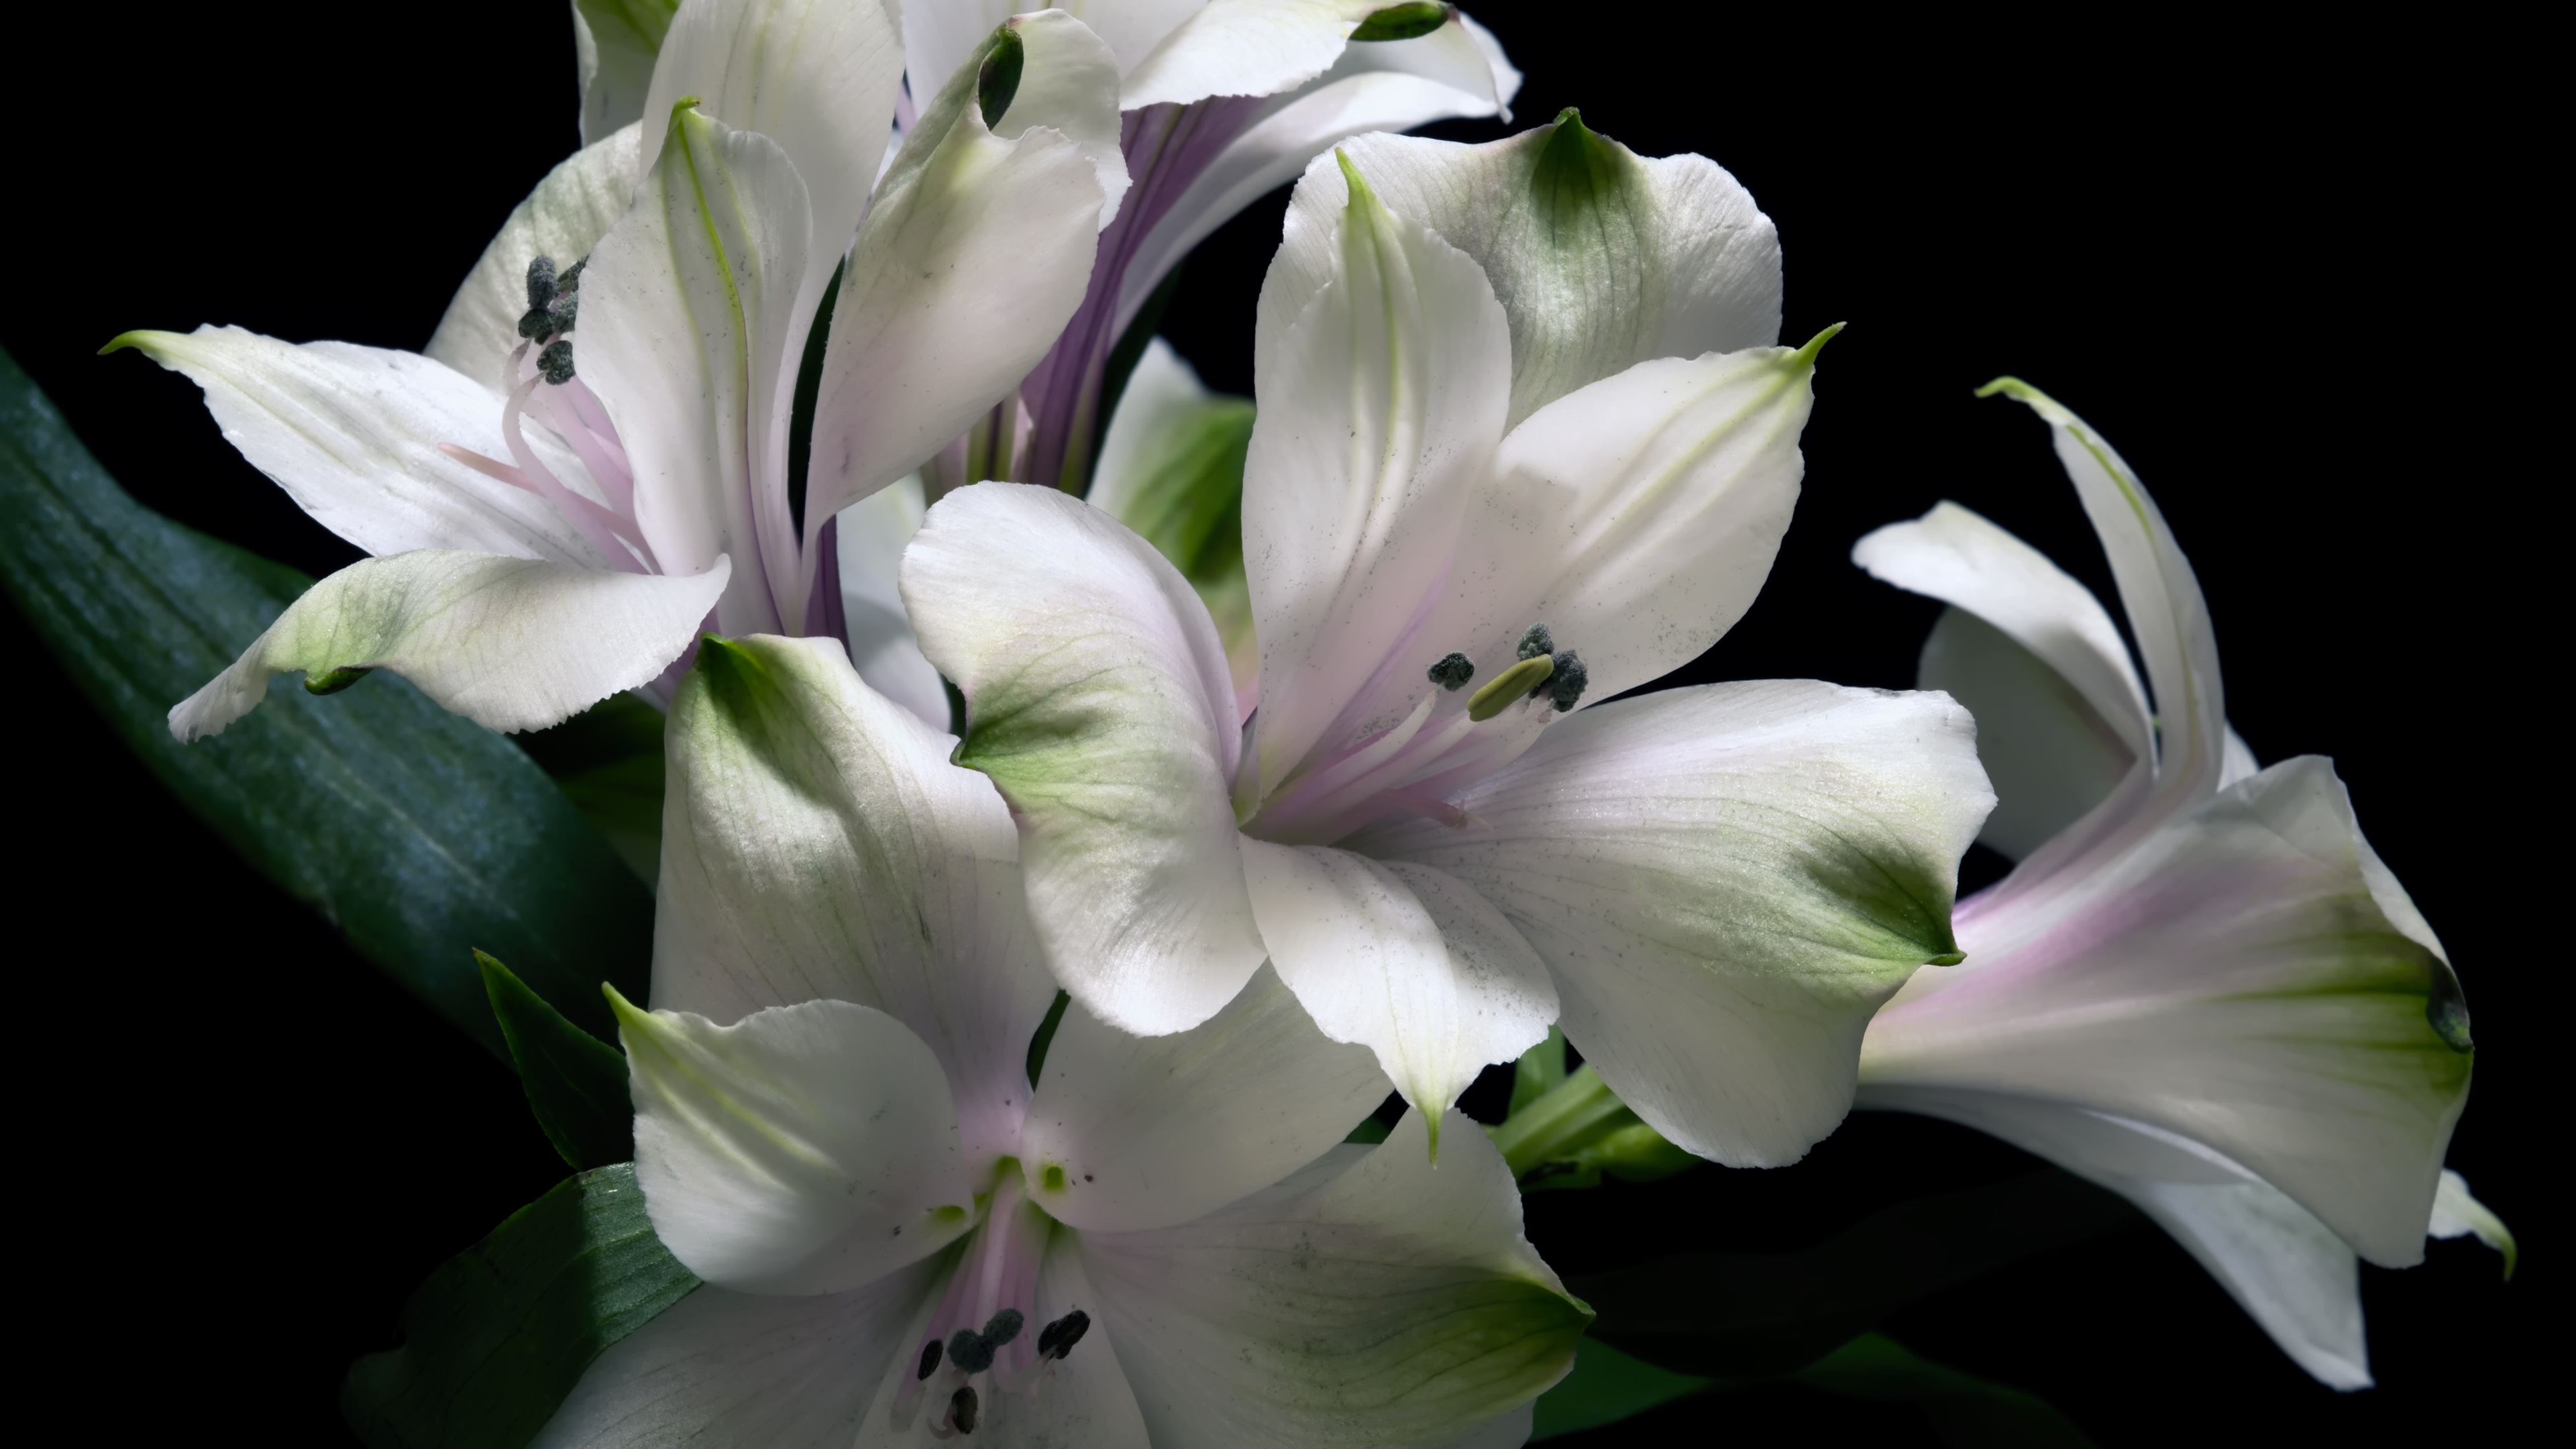 Wallpaper white lily flowers black background 3840x2160 uhd 4k download this wallpaper izmirmasajfo